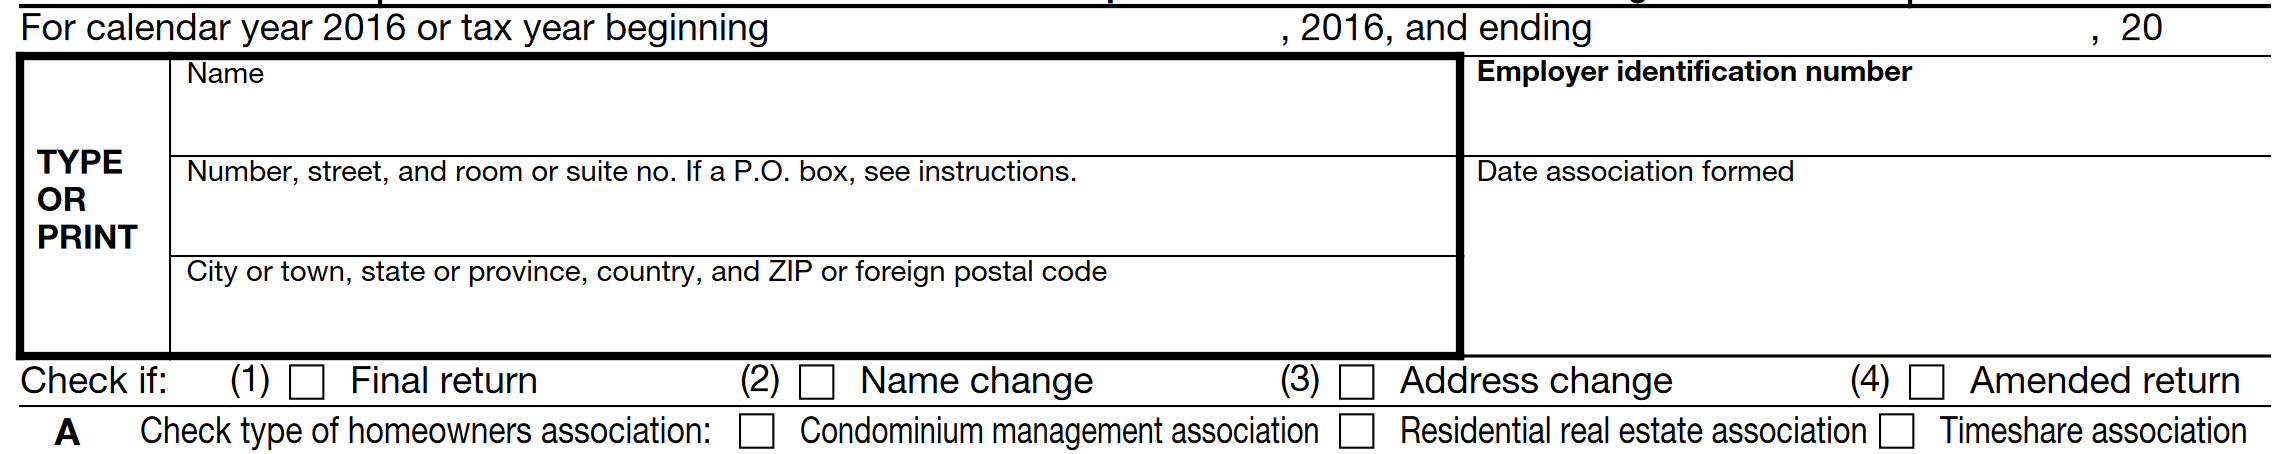 form 1120 h example